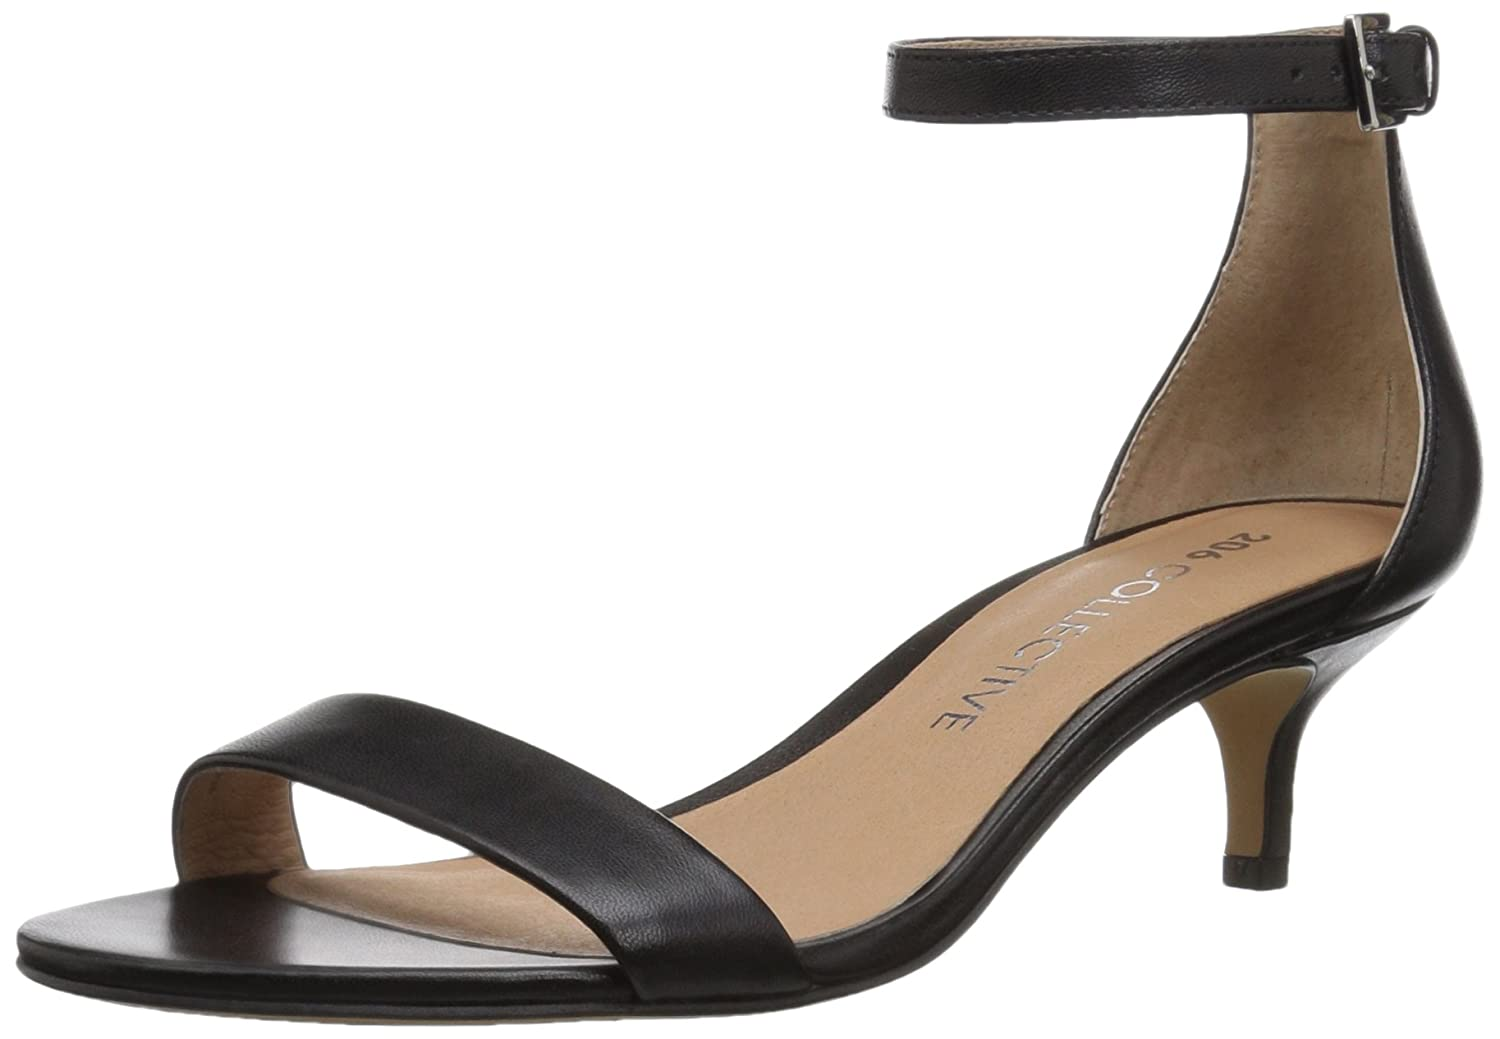 206 Collective Women's Eve Stiletto Heel Dress Sandal-Low Heeled AW0061